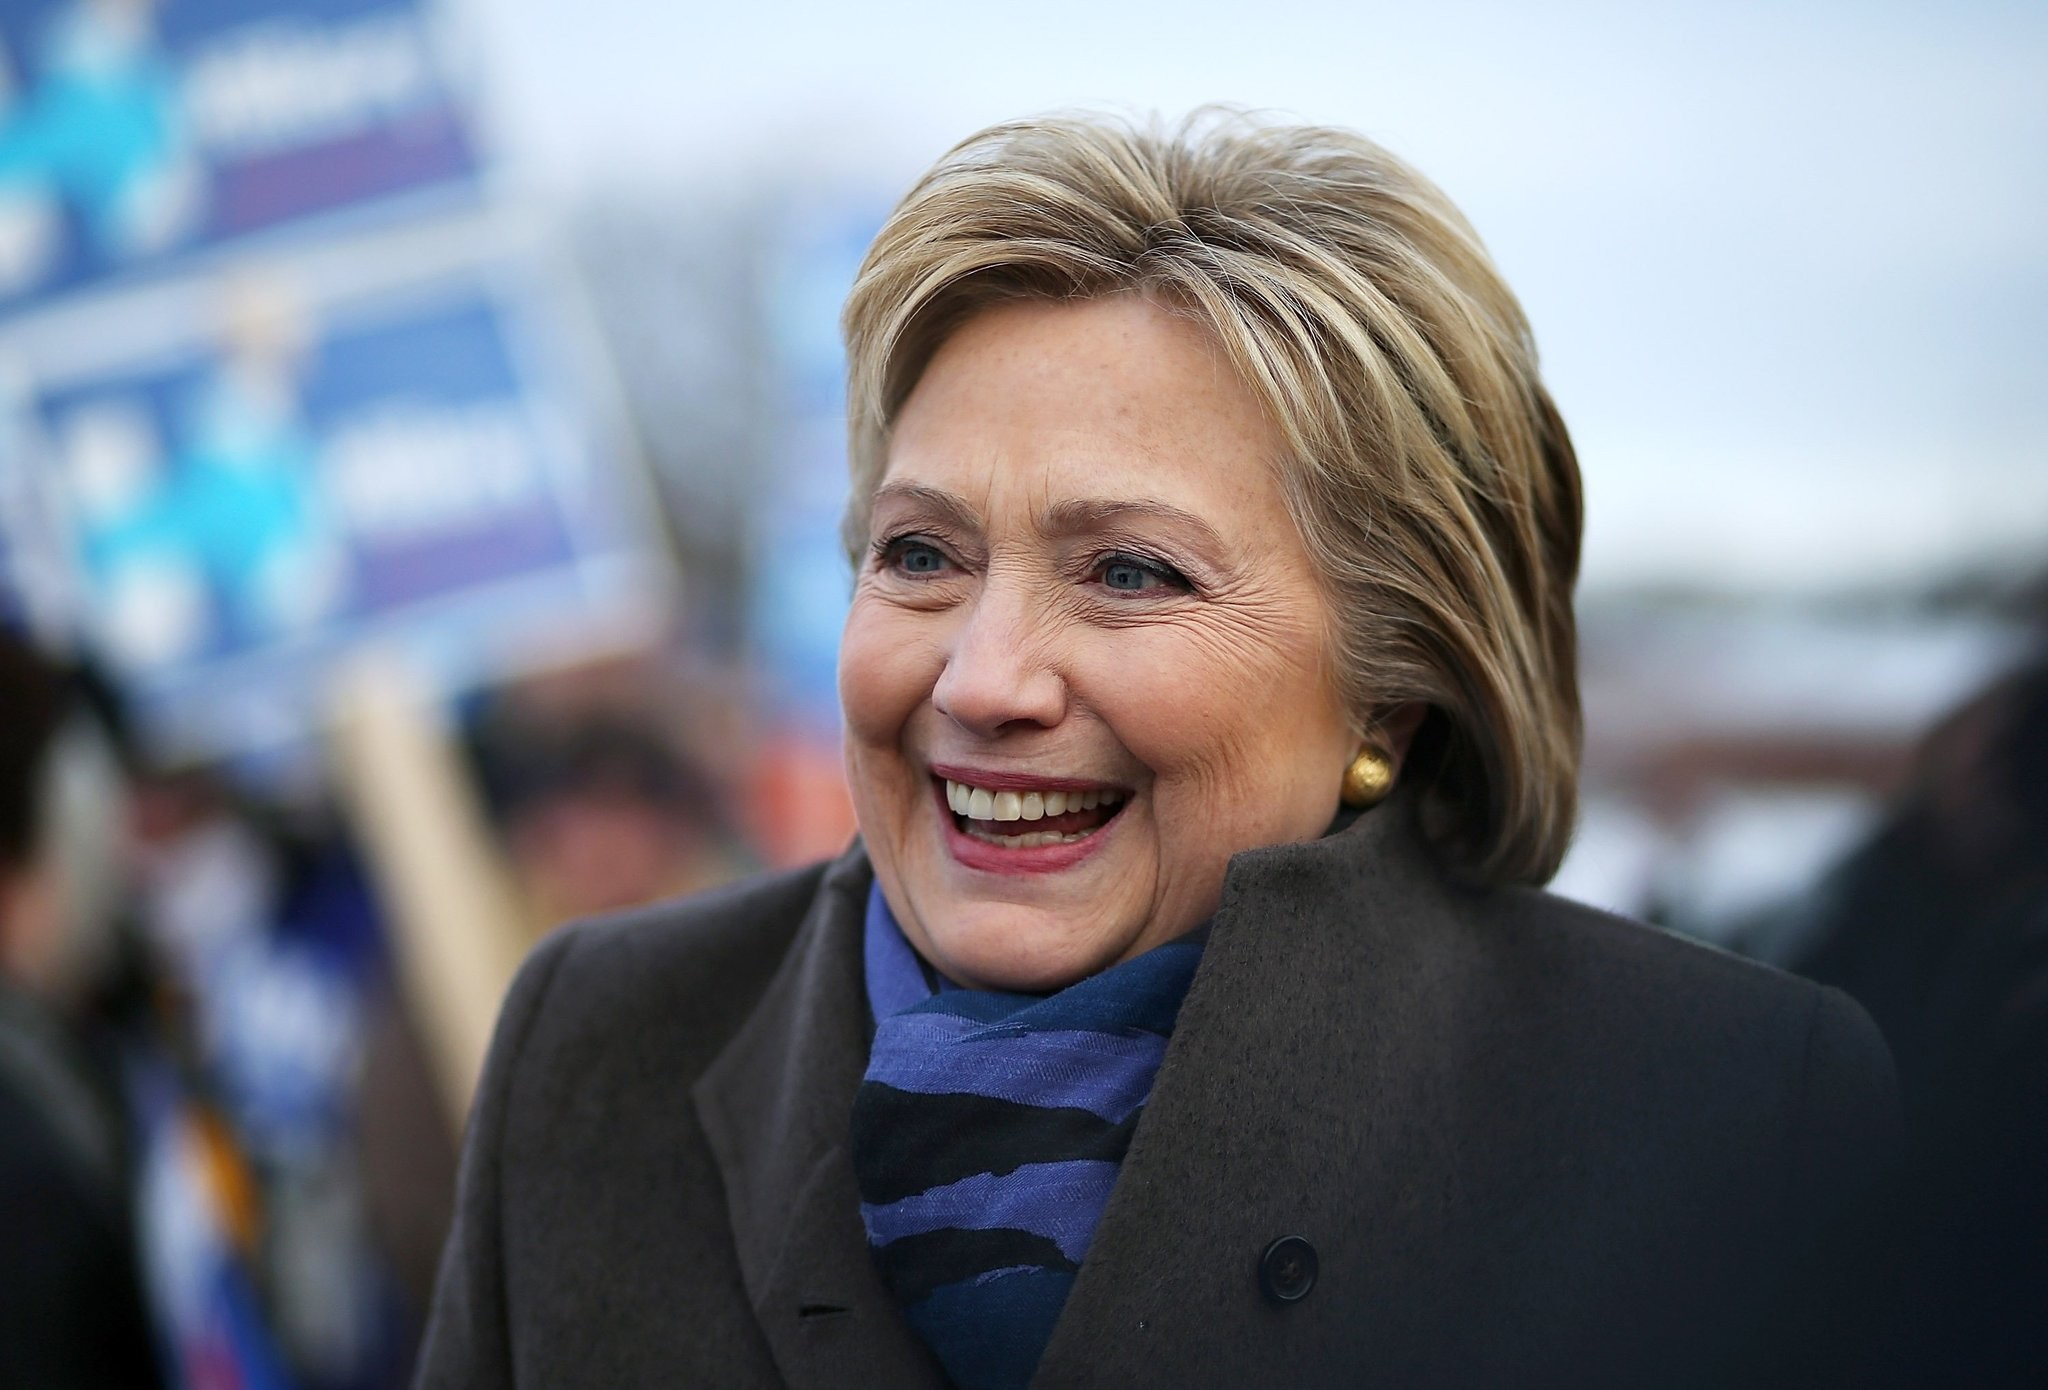 hillary clinton 2016 wallpaper  Hillary Clinton 2017 Wallpaper (85  images)